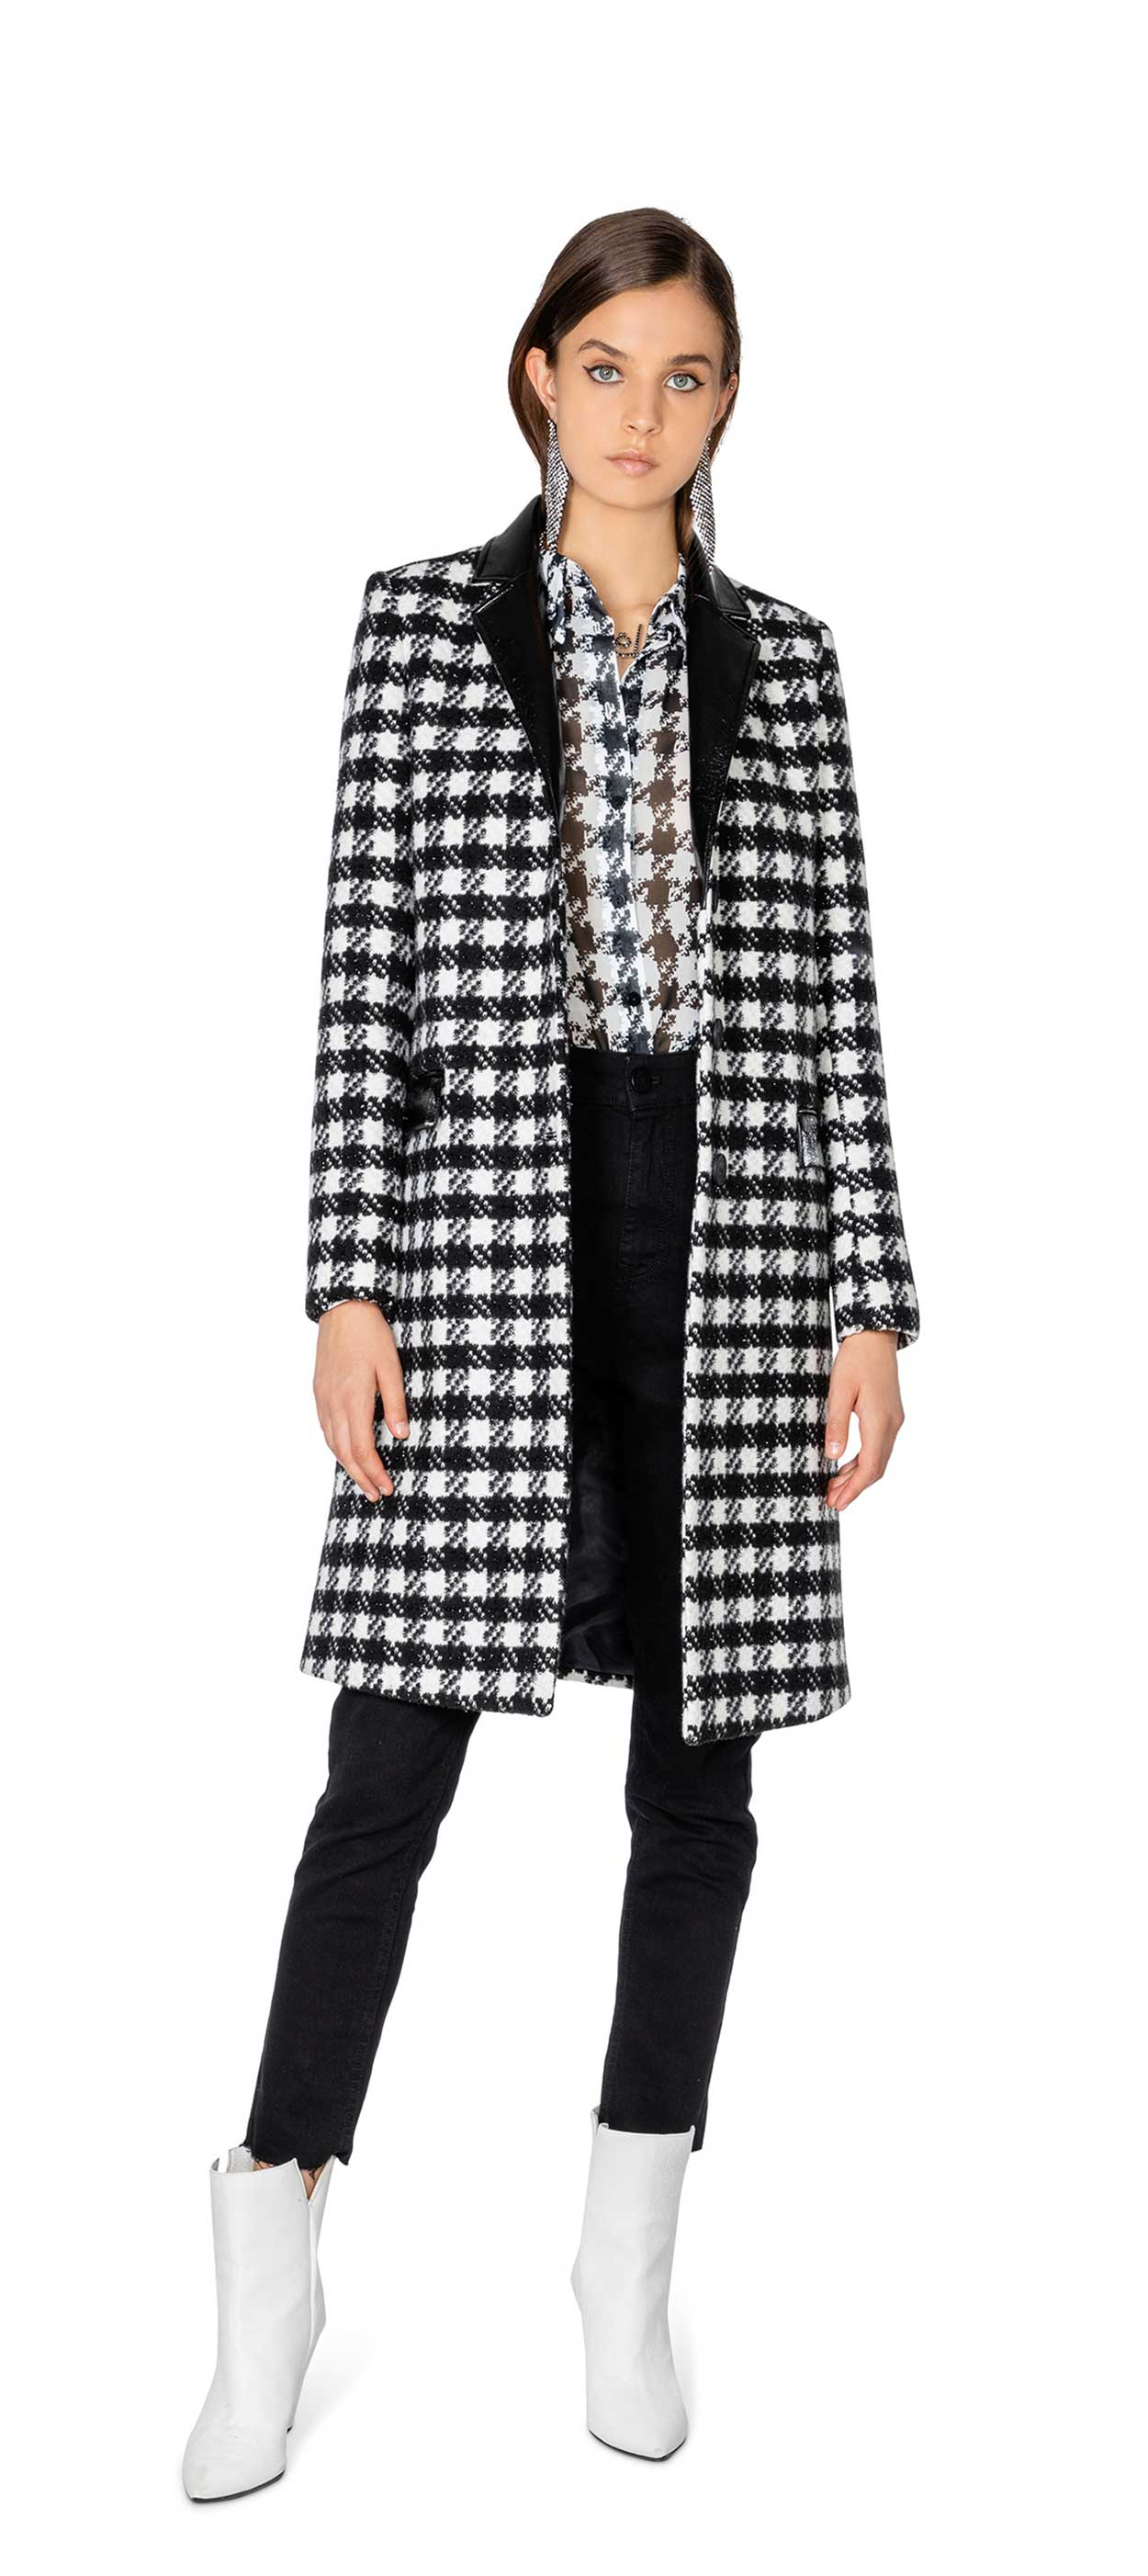 COAT - GBD8074 - GAELLE PARIS